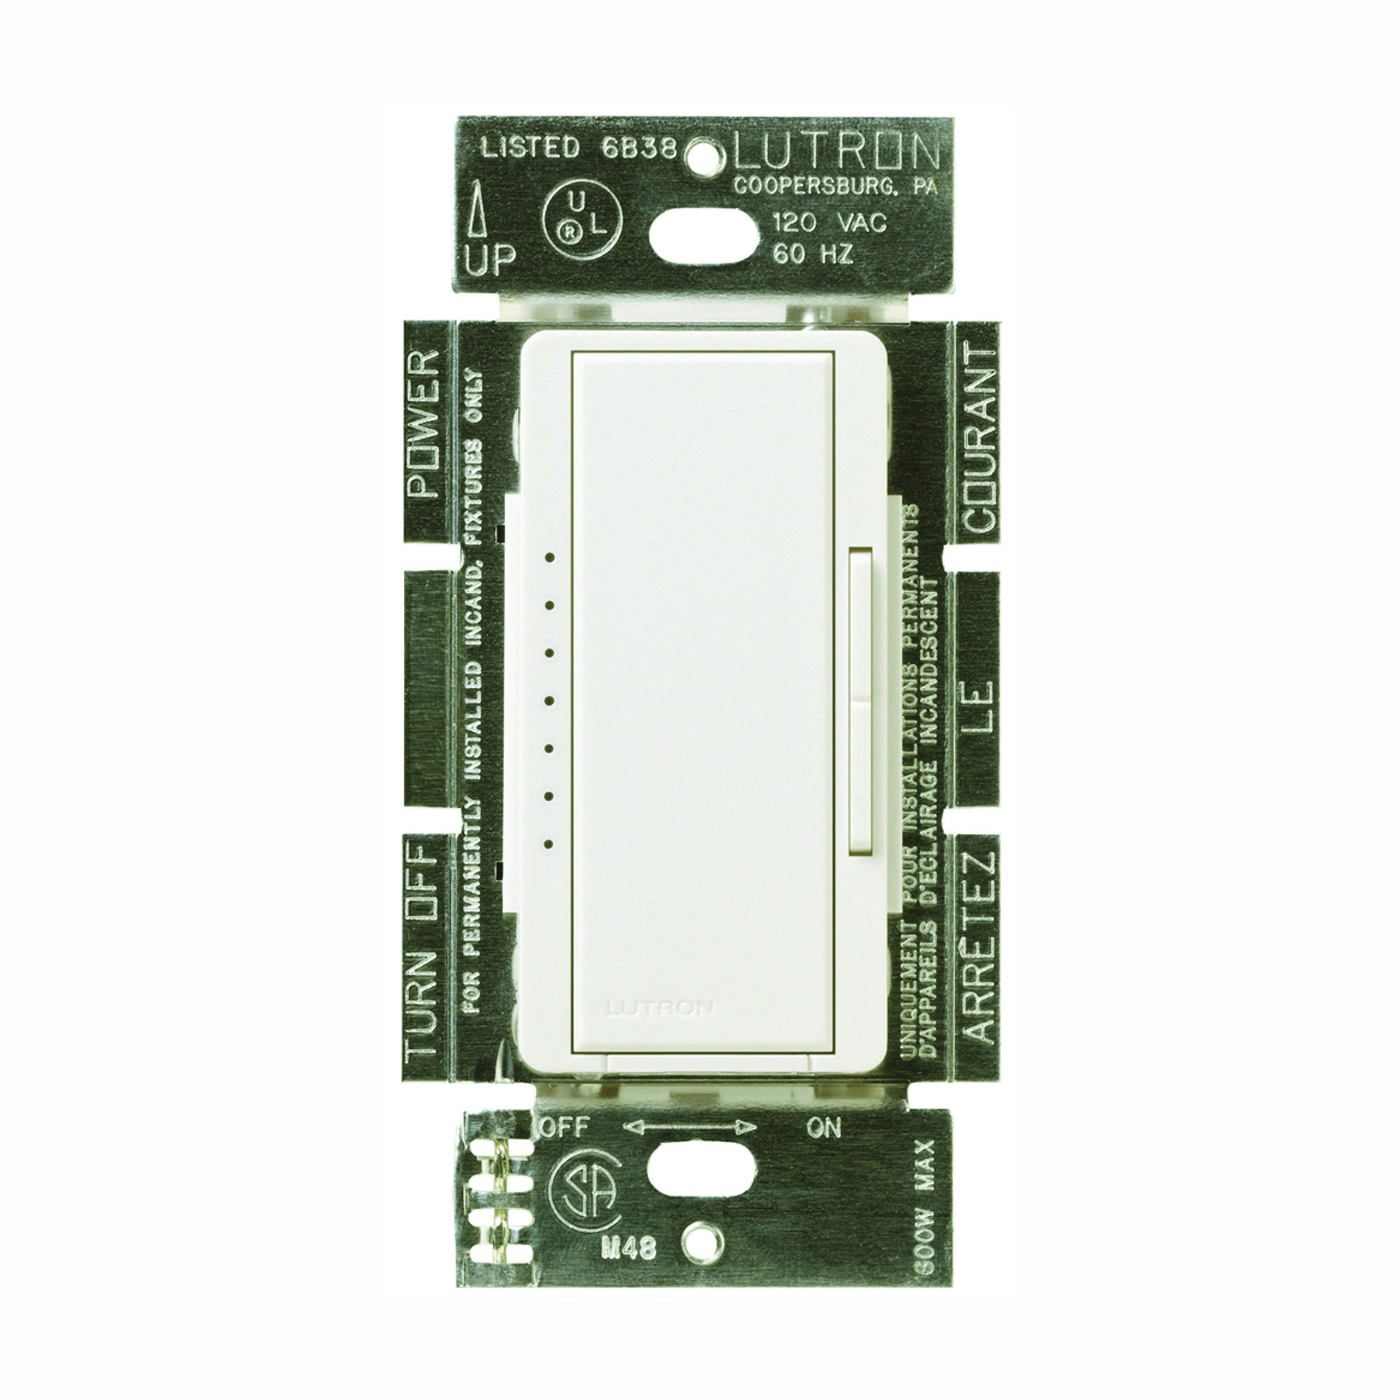 Picture of Lutron Maestro MACL-153MH-WH C.L Dimmer, 1.25 A, 120 V, 150 W, CFL, Halogen, Incandescent, LED Lamp, 3-Way, White